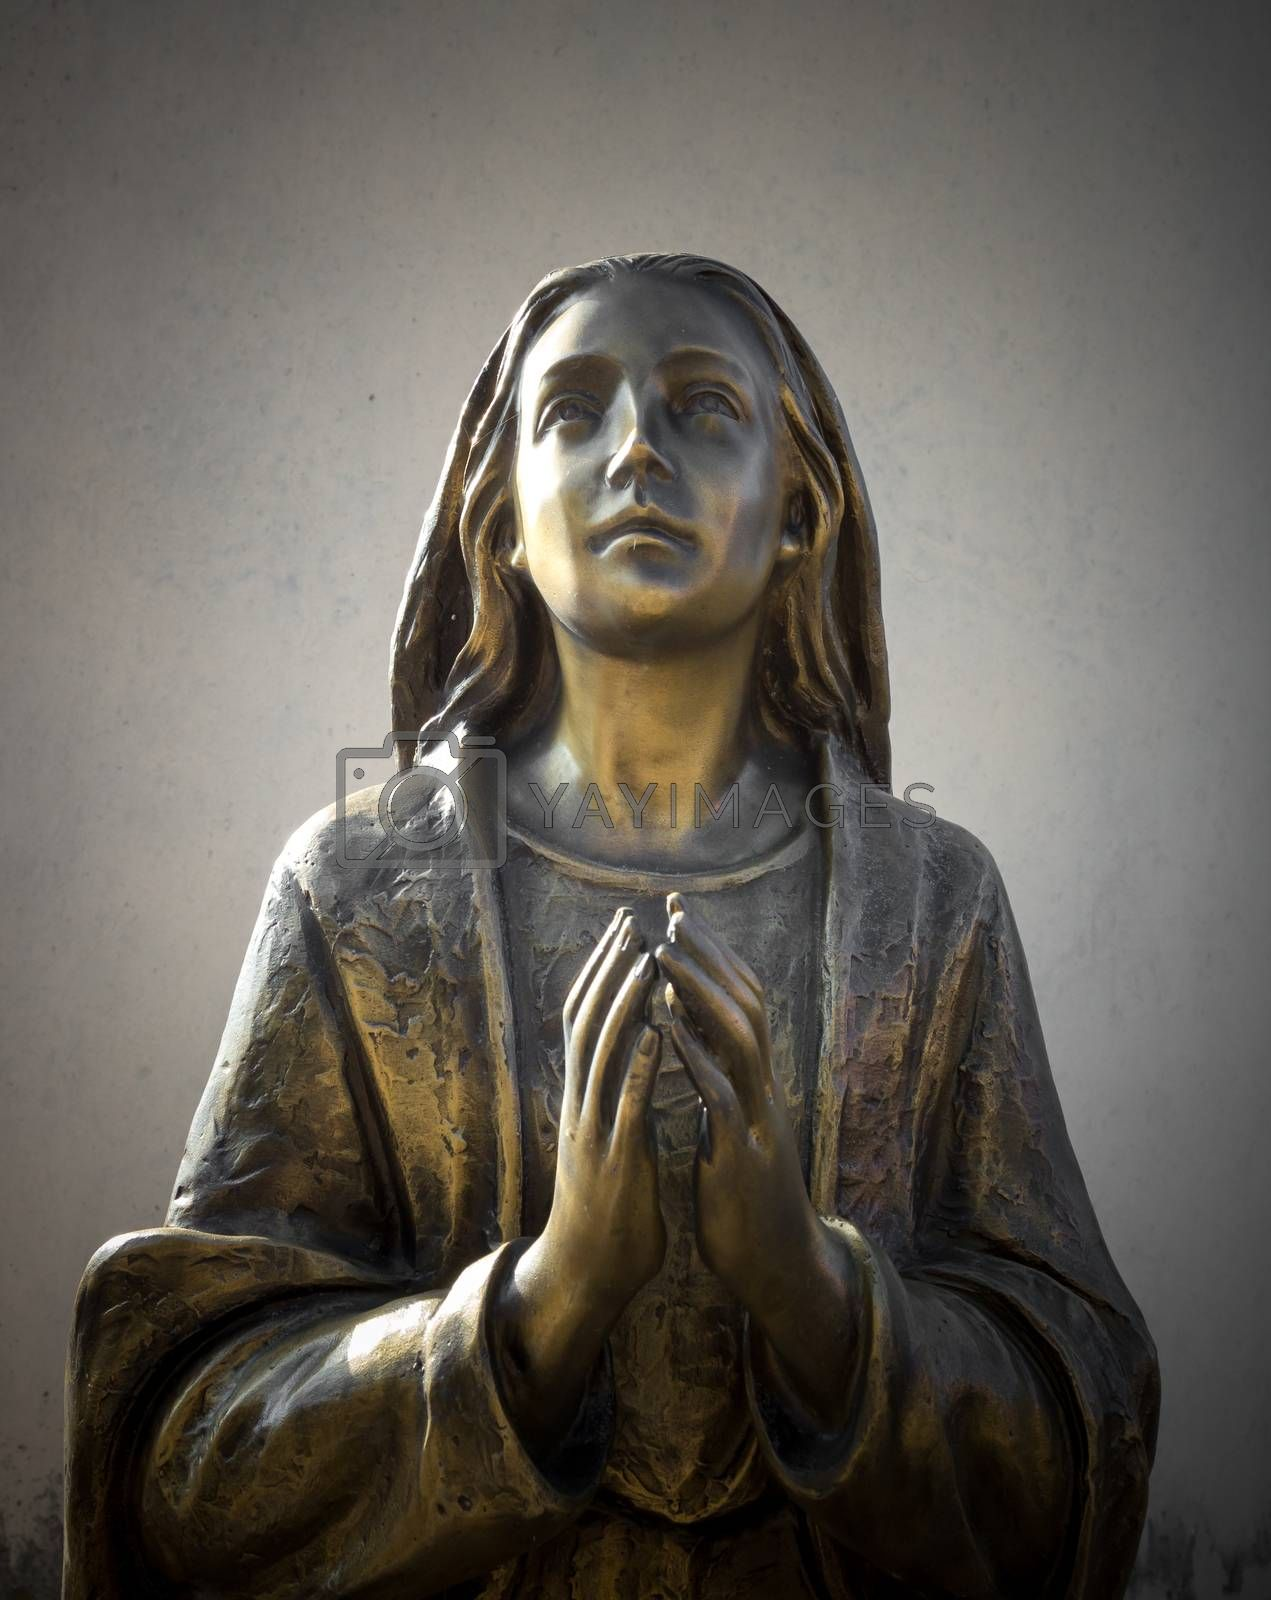 Holy Mary statue bronze that prays with folded hands, in the background a gray wall. It can be used for events, concepts and backgrounds.